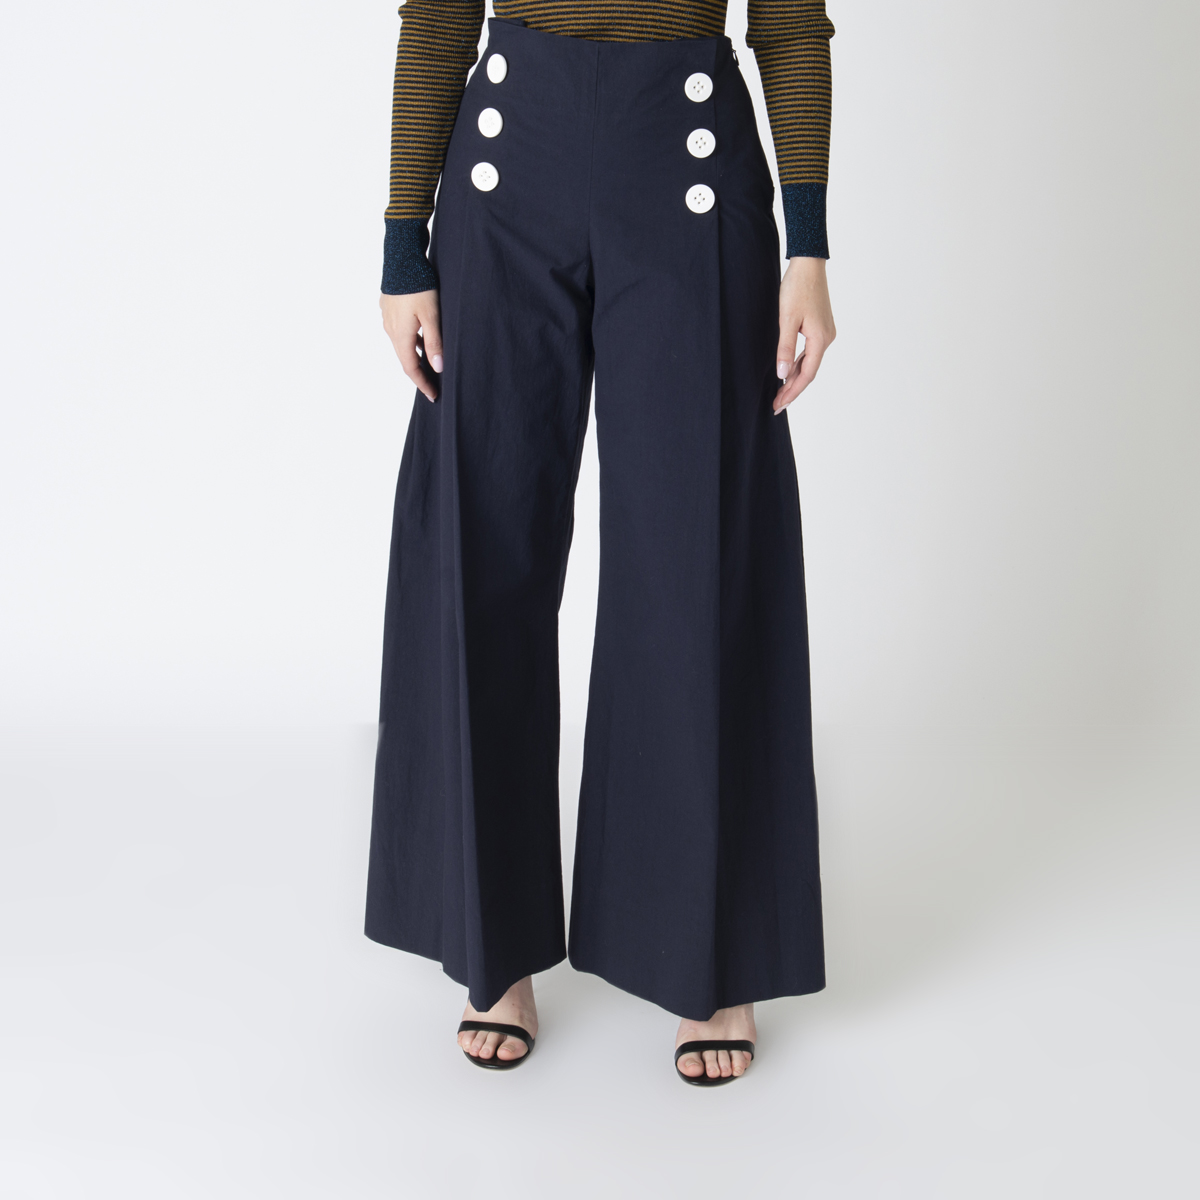 Rosie Assoulin Wide-Leg Sailor Pants – New With Tags